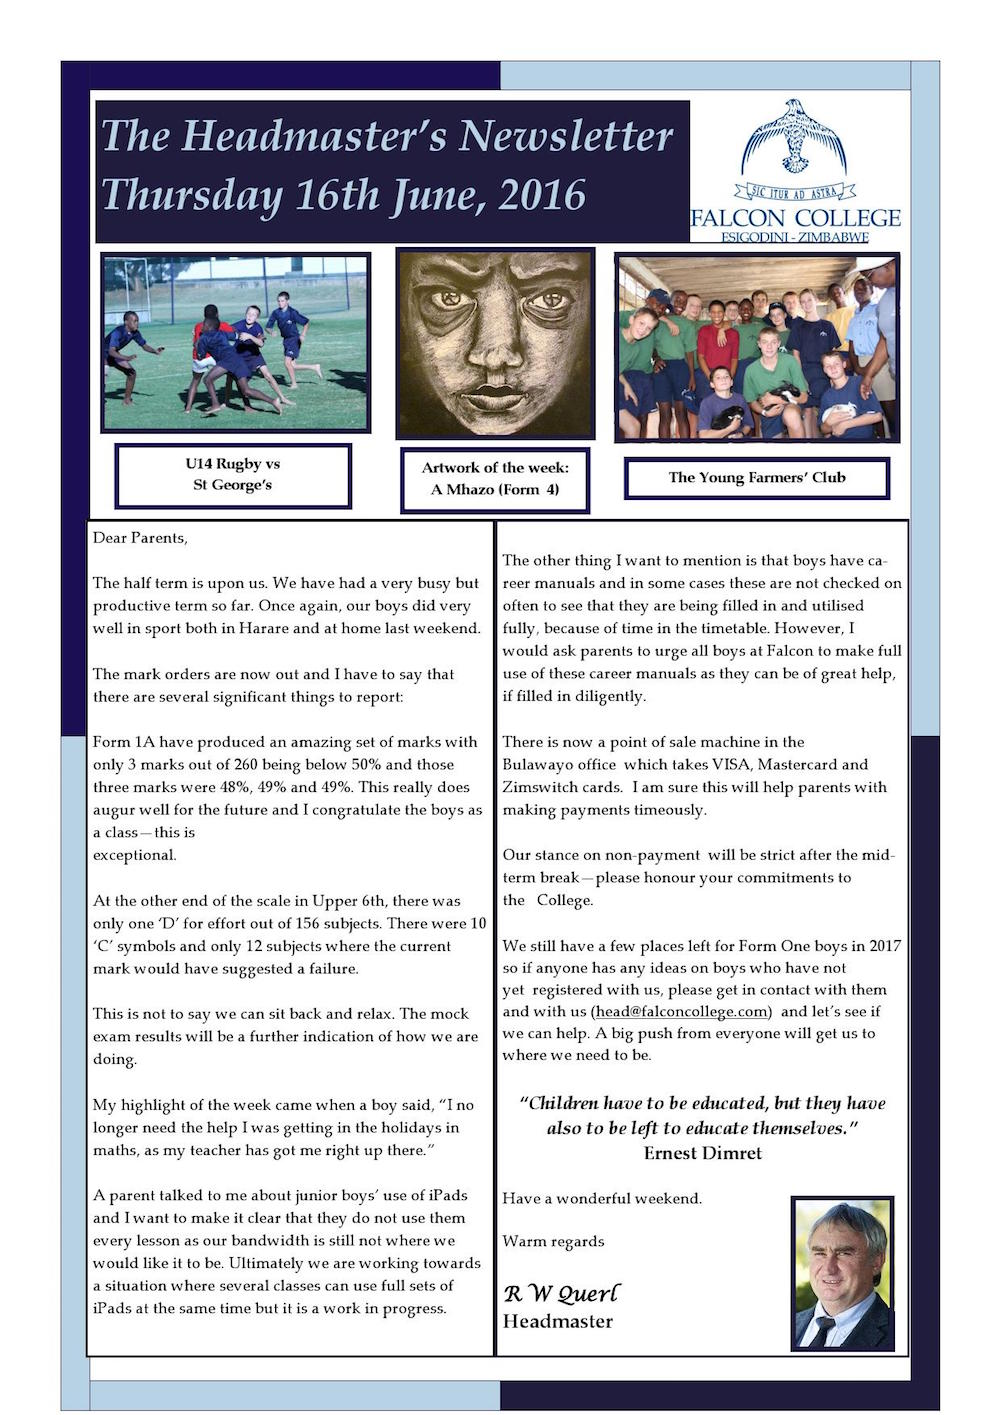 Headmaster's Newsletter Thursday 16th June 2016 edited_000001